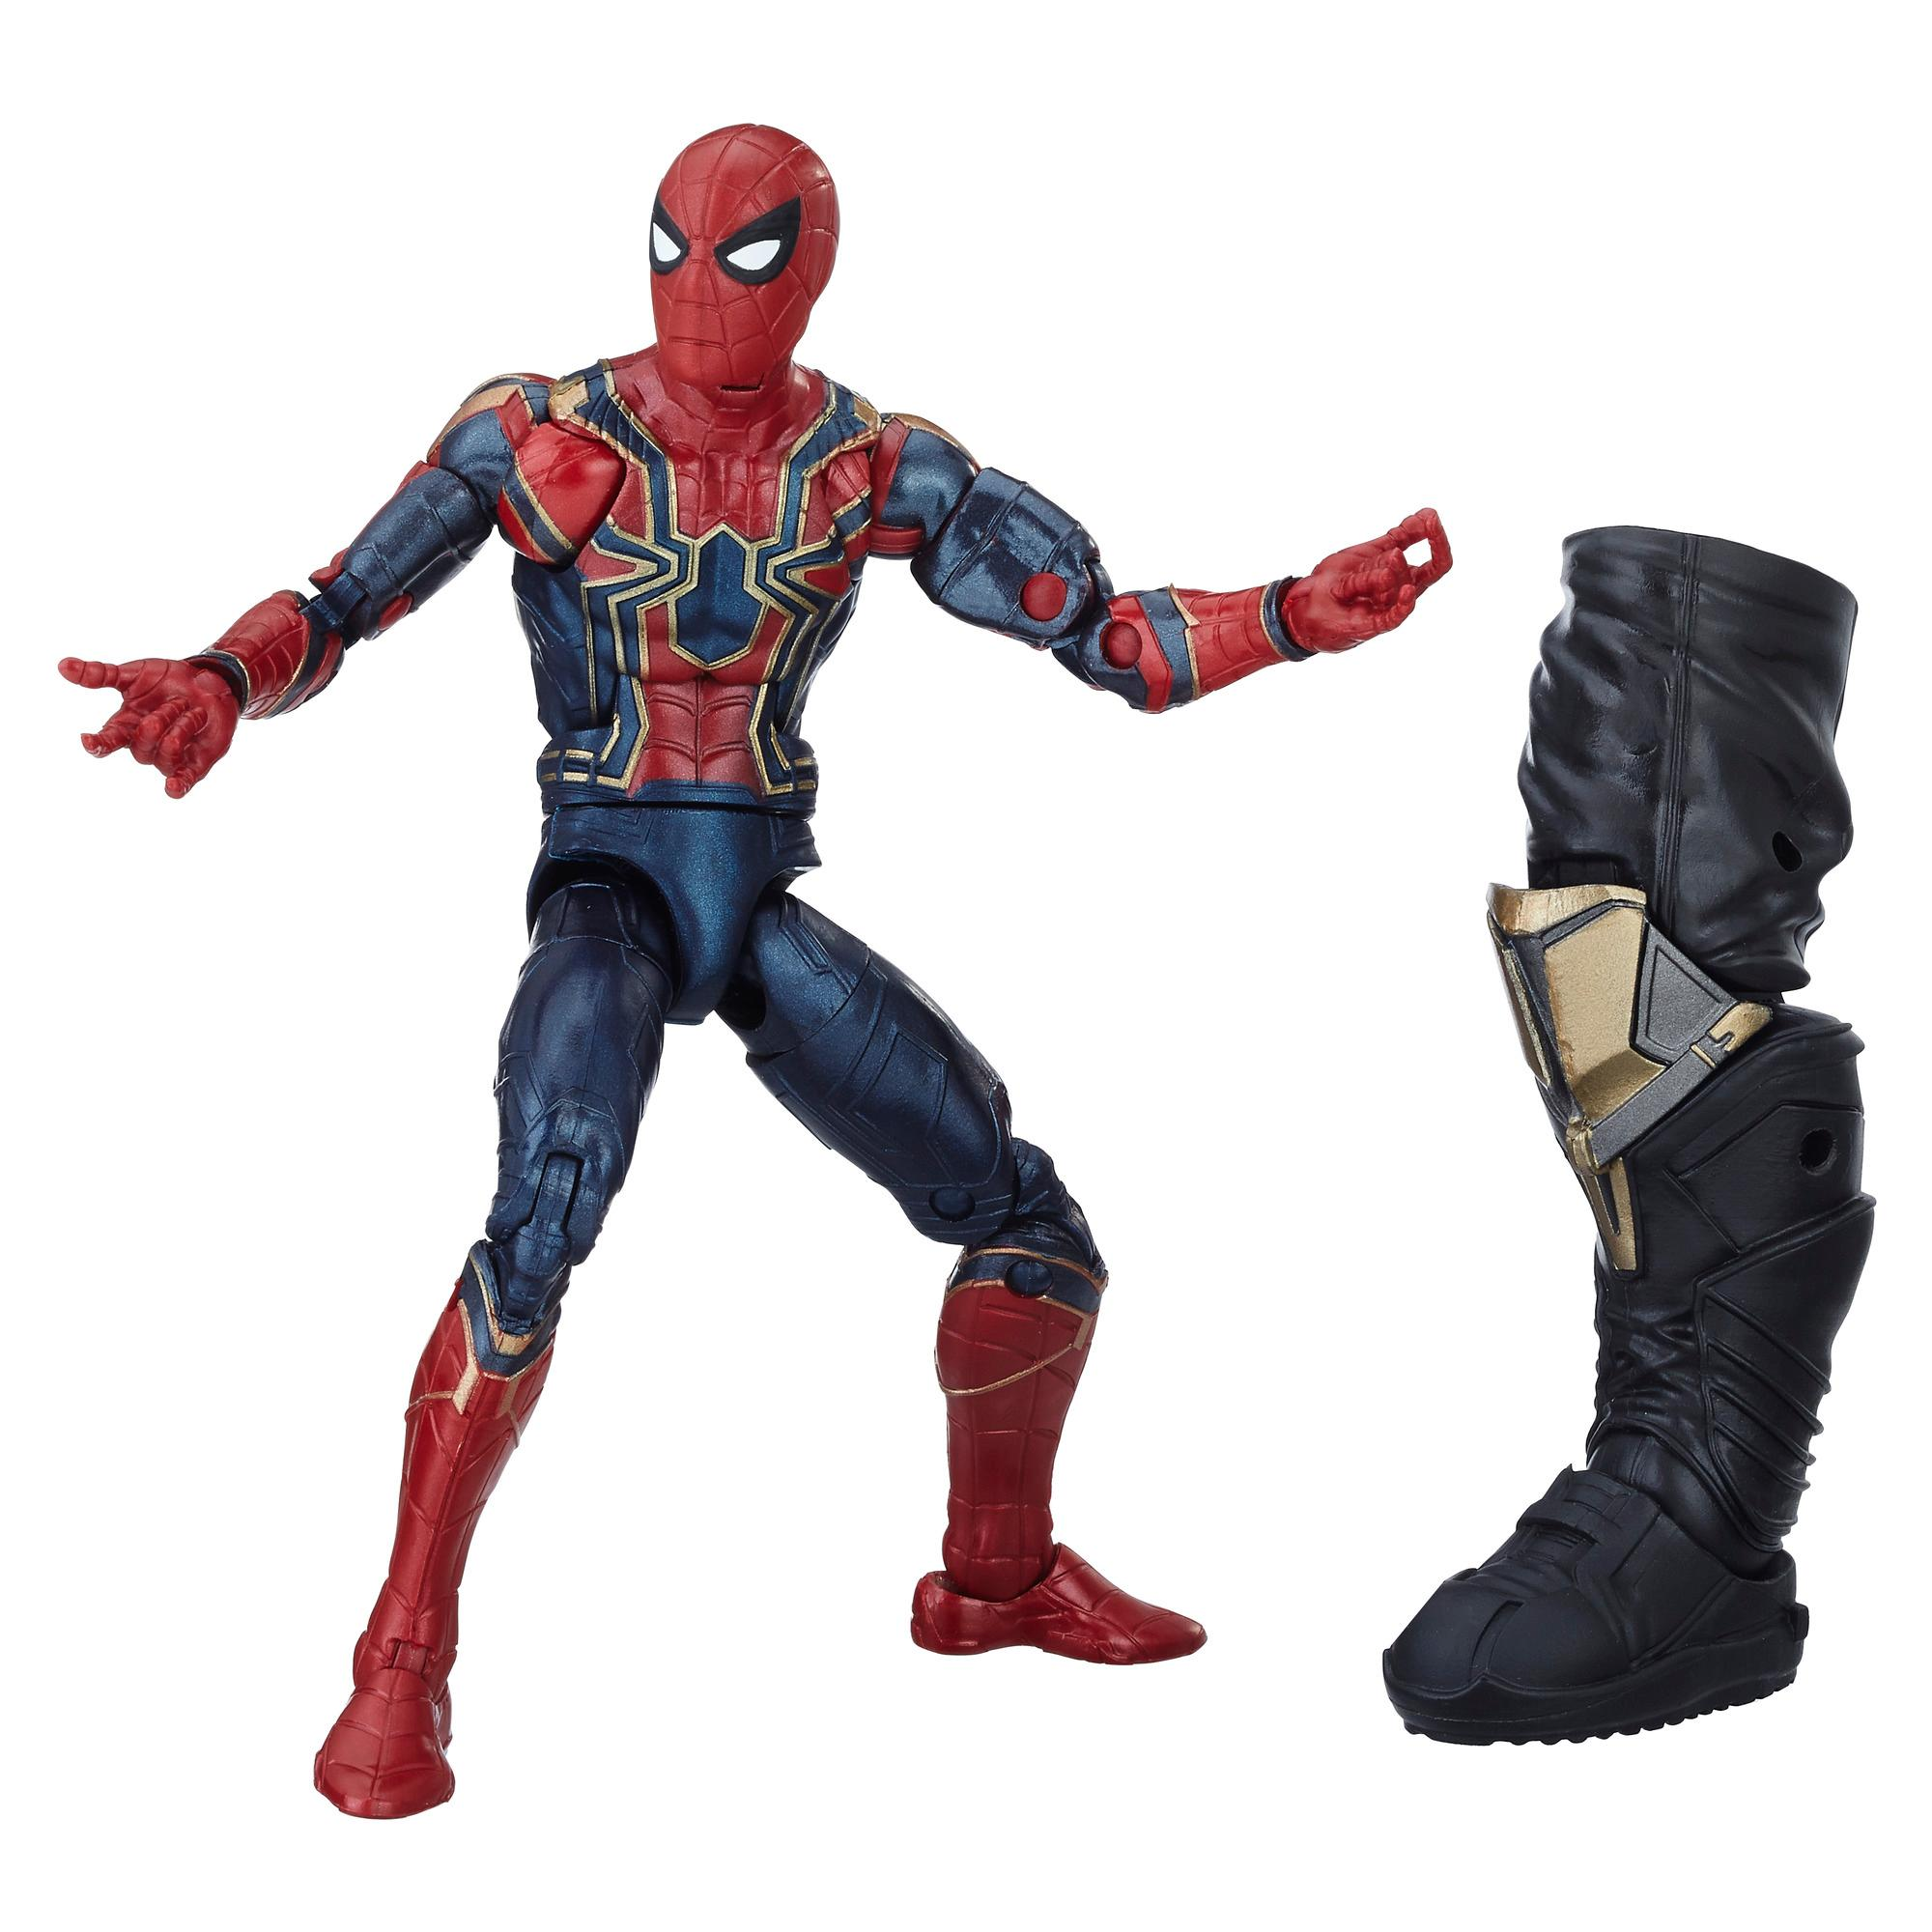 Avengers Marvel Legends Series 6-inch Spider-Man